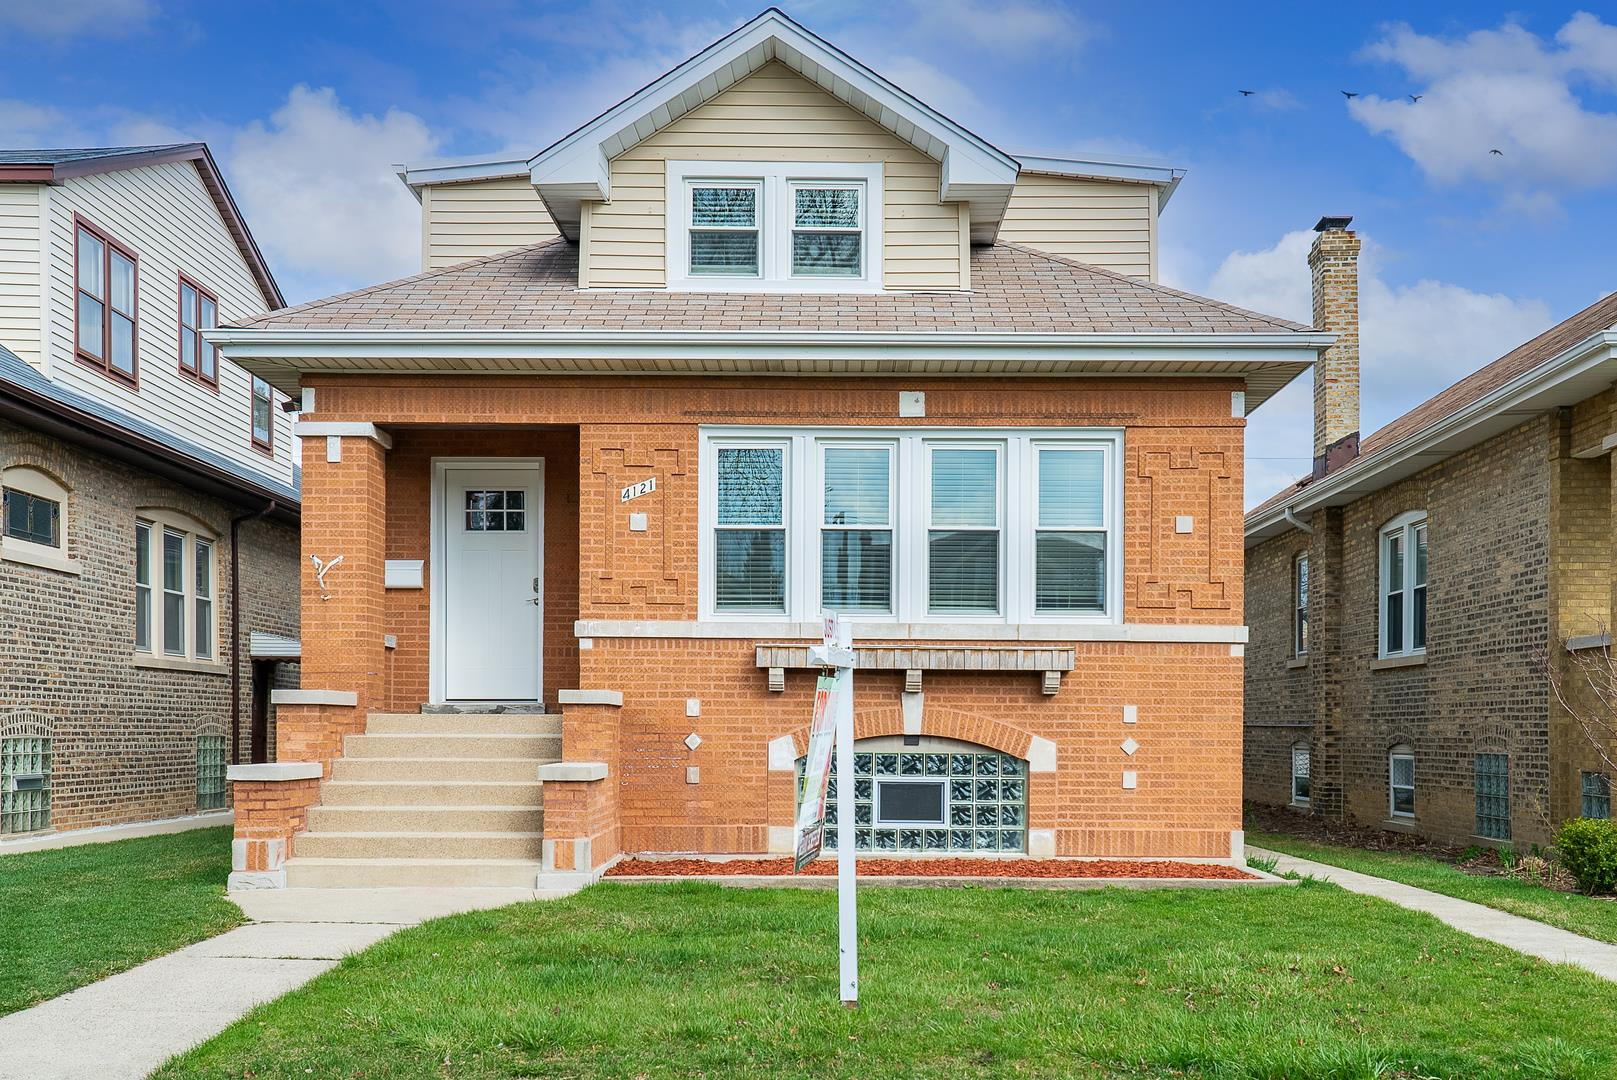 4121 N Major Avenue, Chicago, IL 60634 - #: 11026186